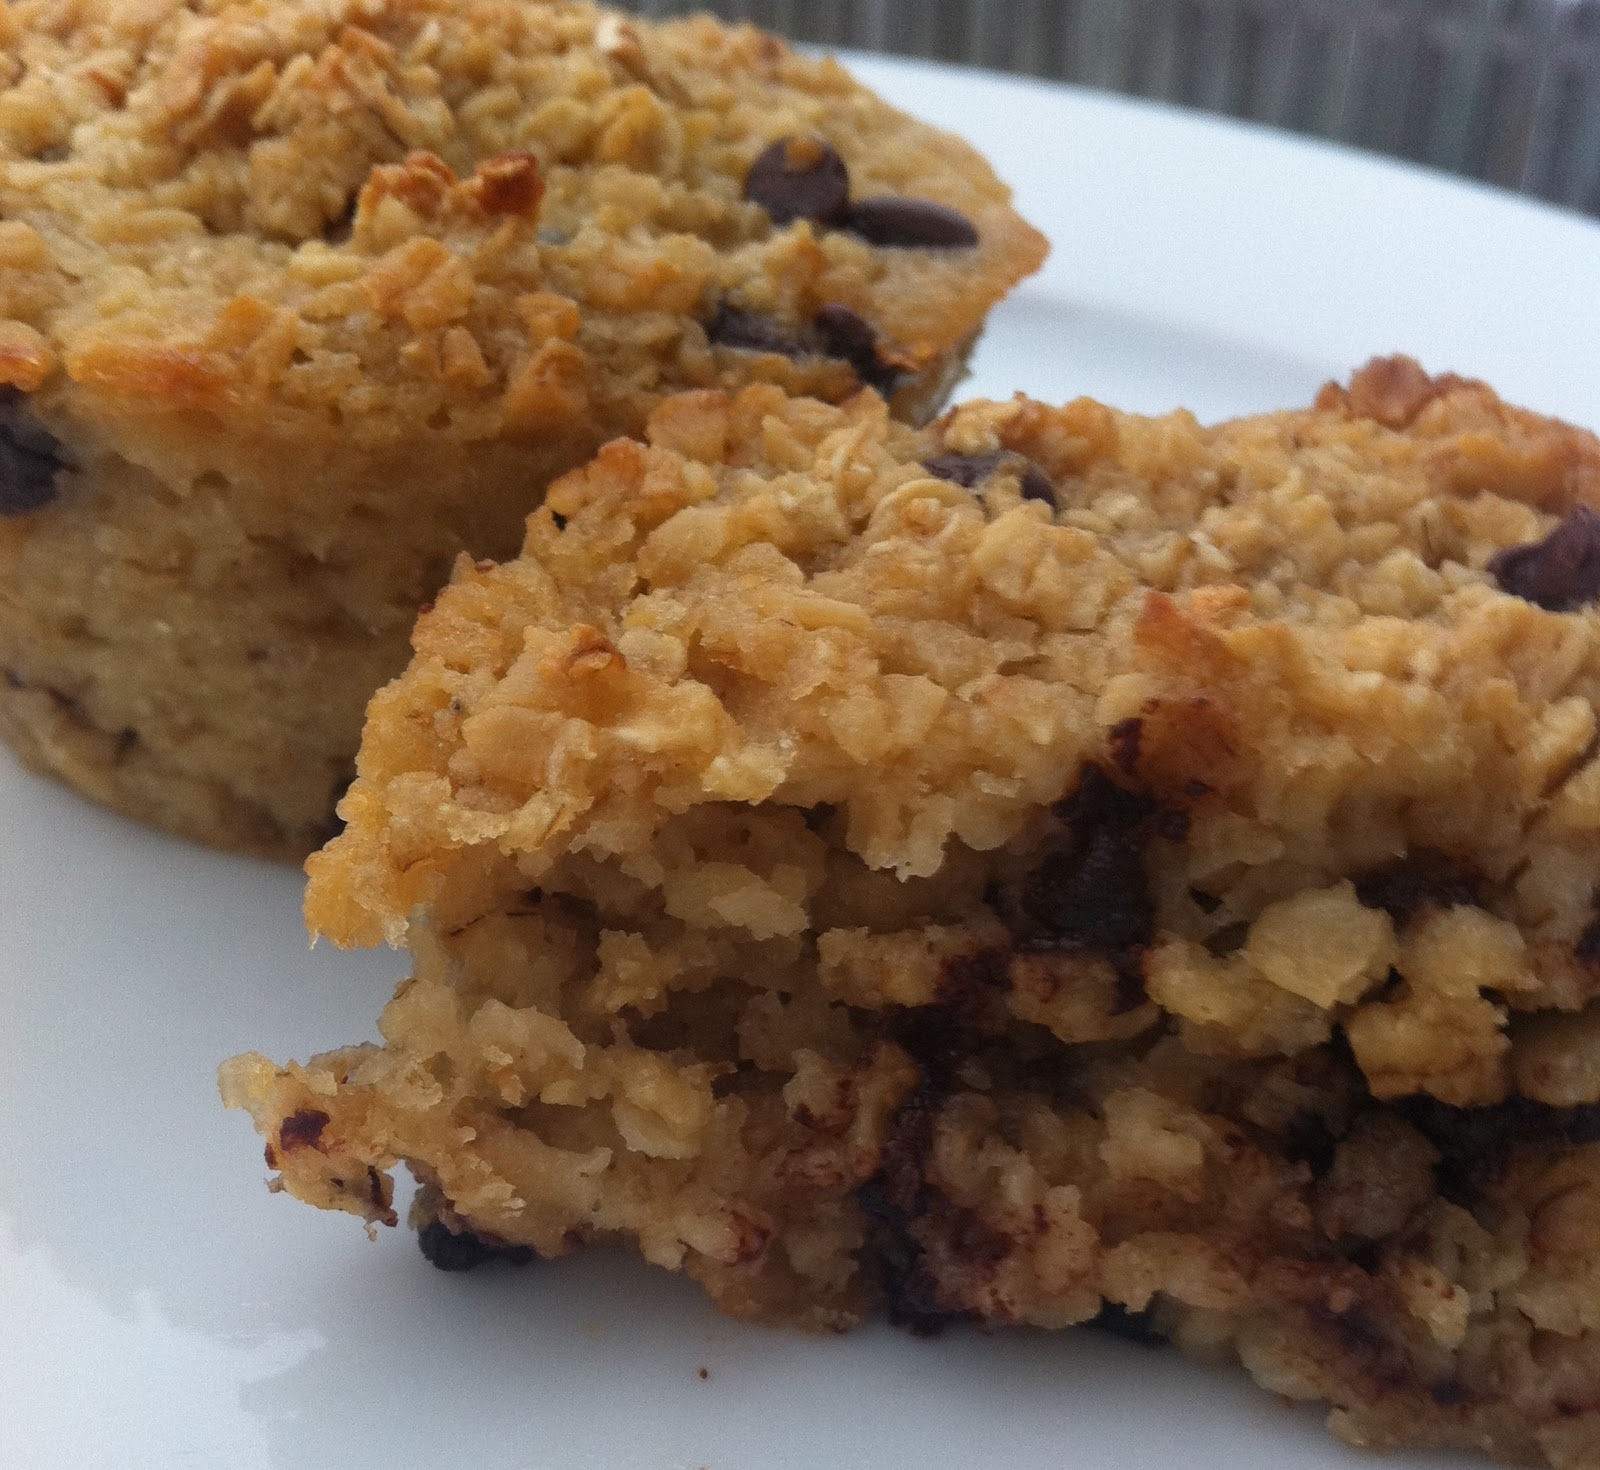 Easy Baked Oatmeal Recipe - Great Make Ahead Breakfast ...